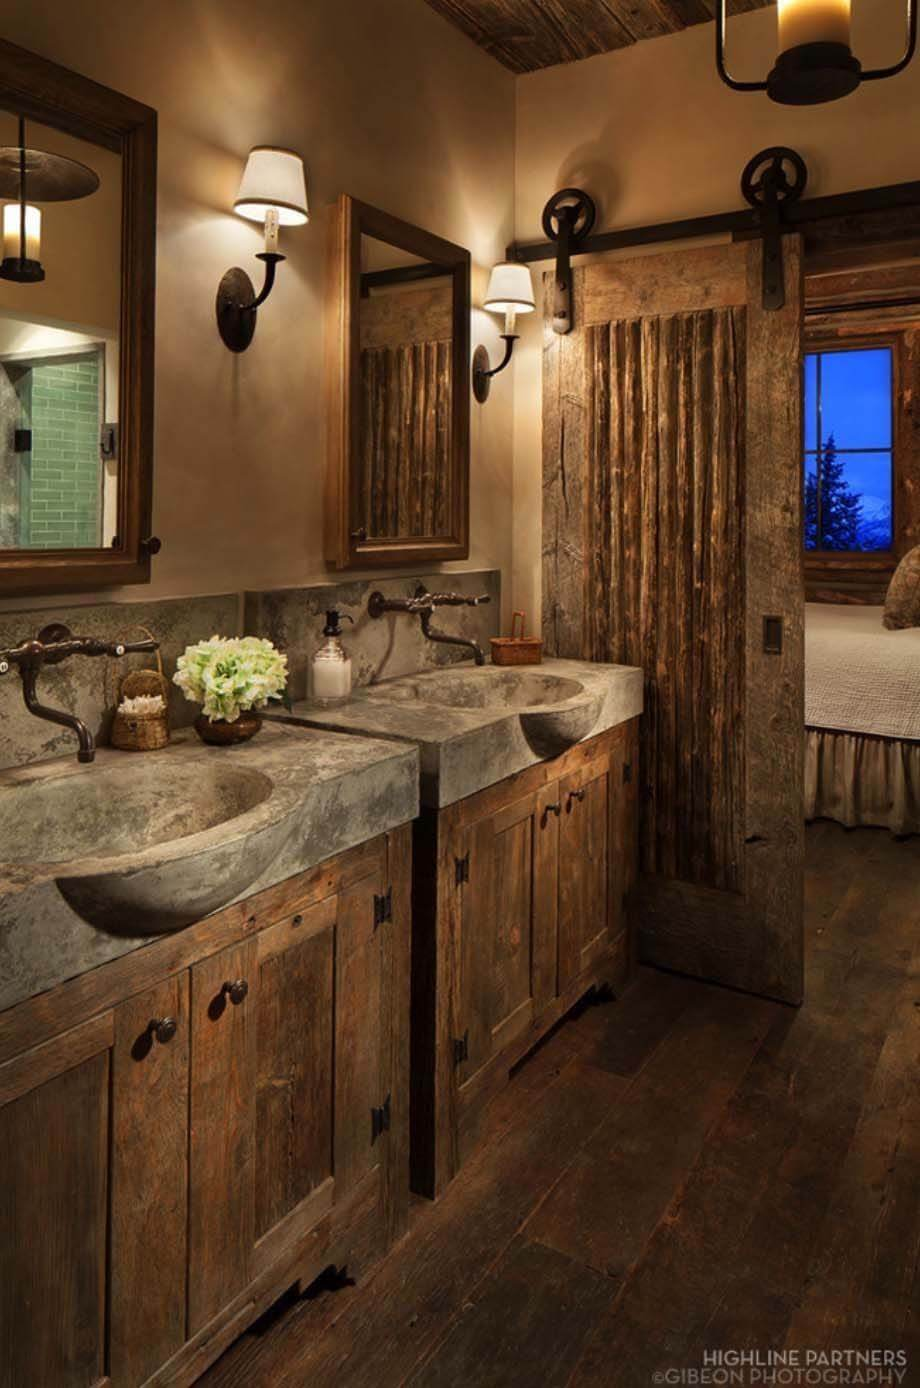 Rustic Decor with Stone Basins